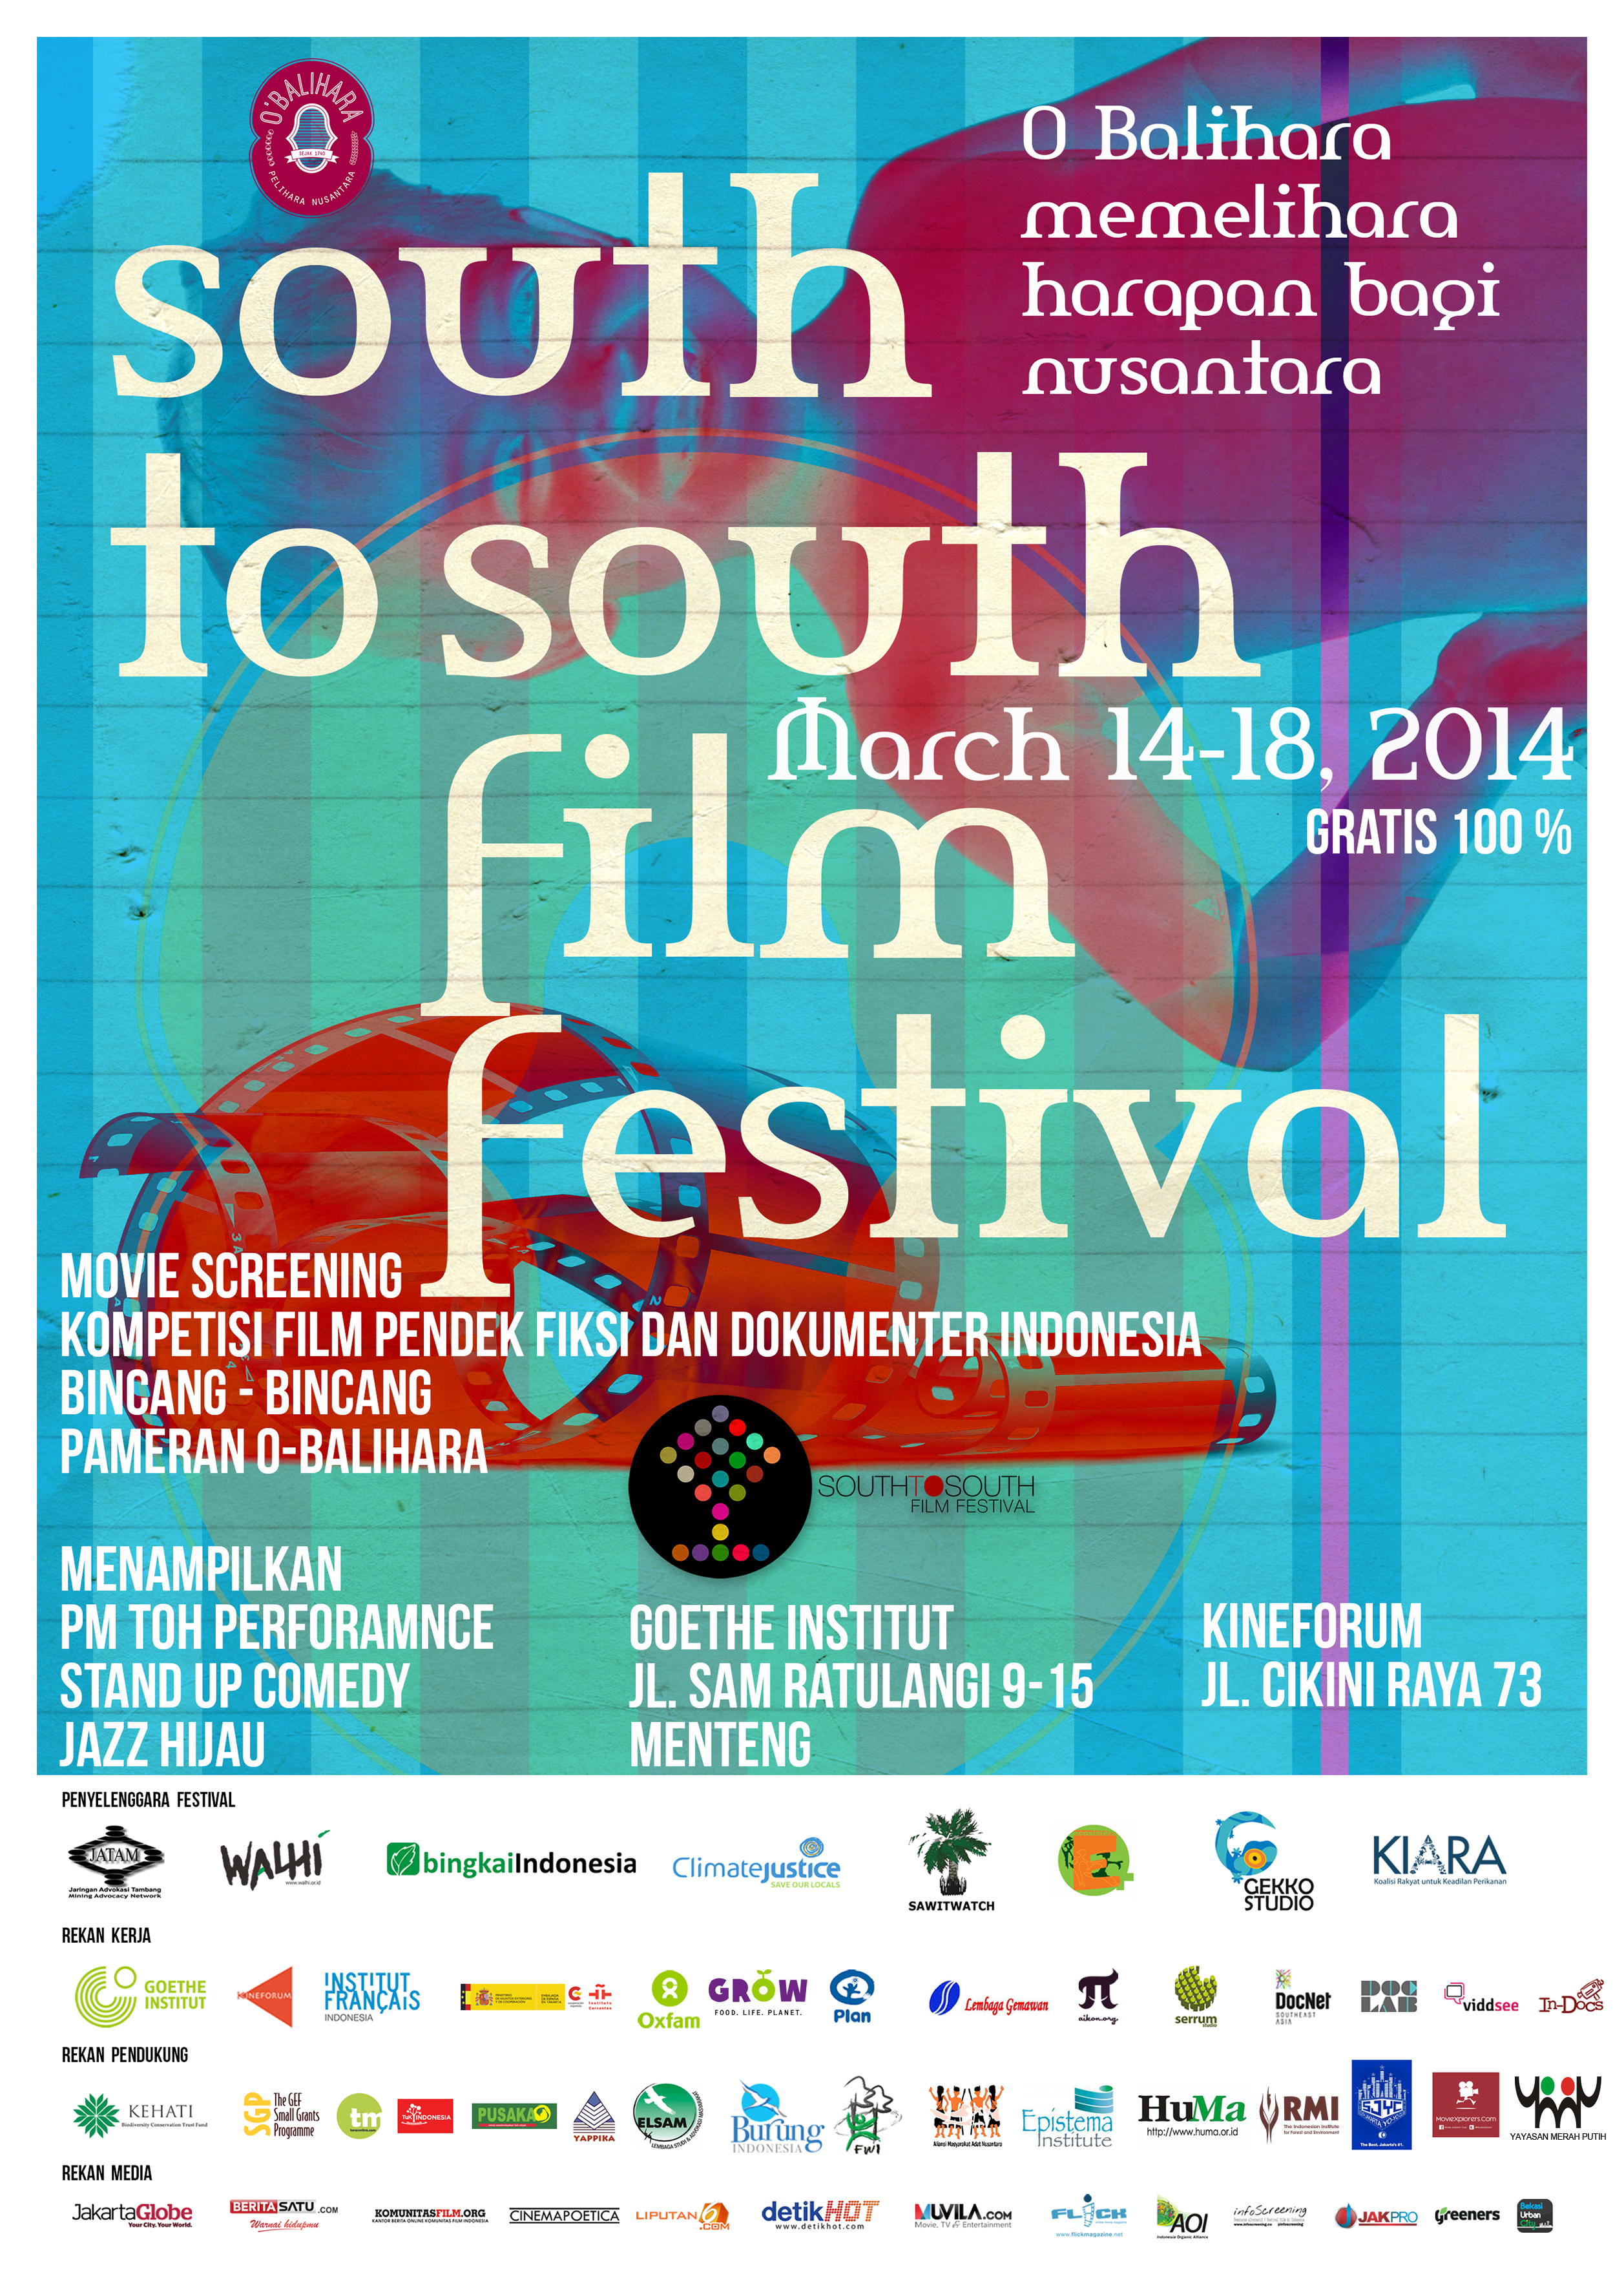 South To South Festival Film